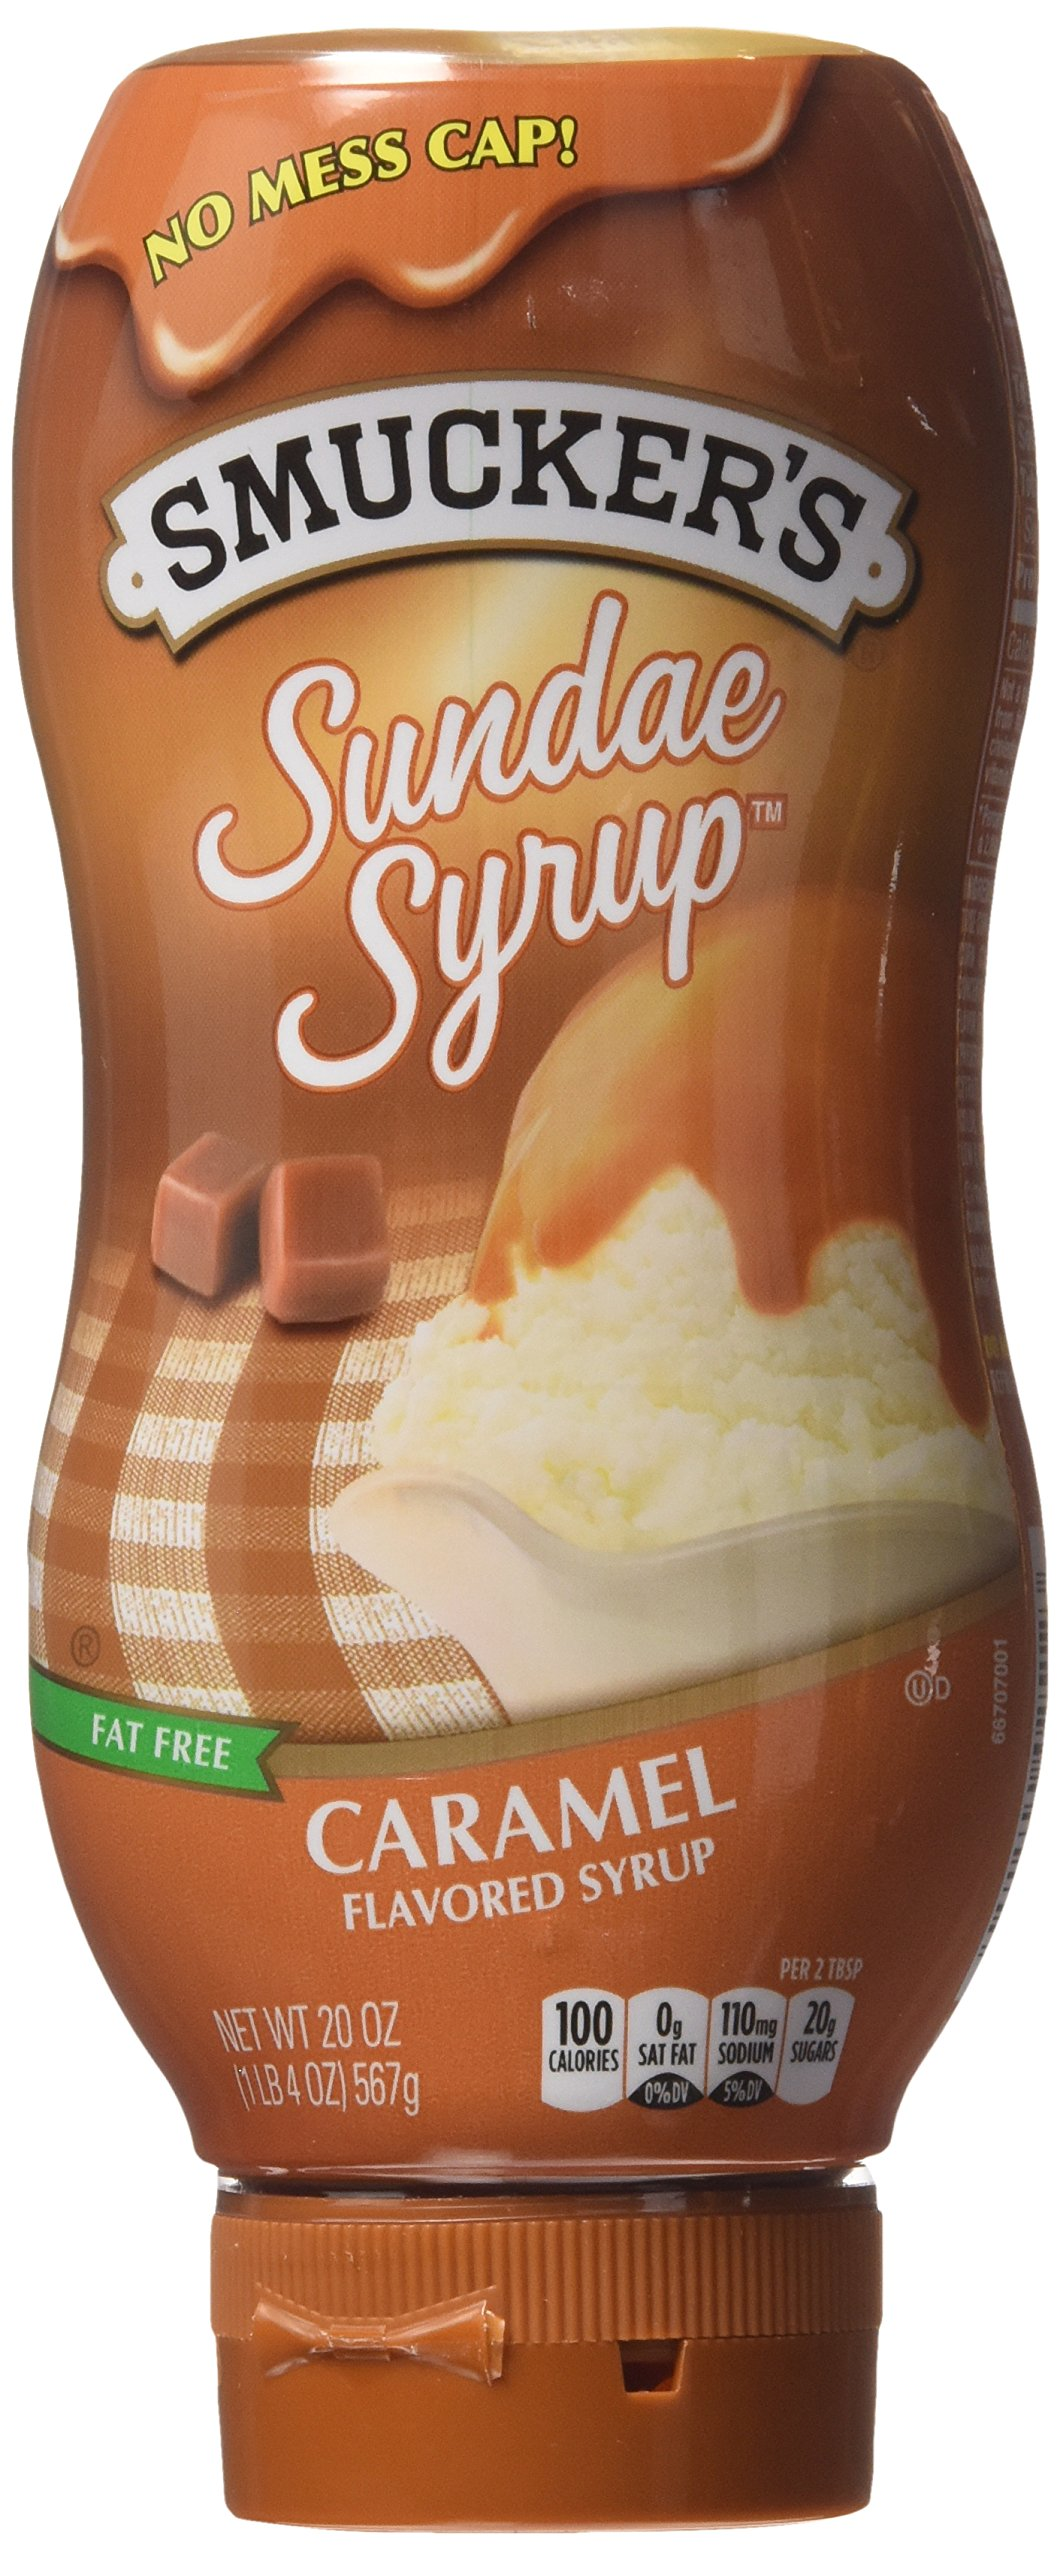 Smucker's Sundae Syrup Caramel Flavored Syrup, 20-ounce (Pack of 3)